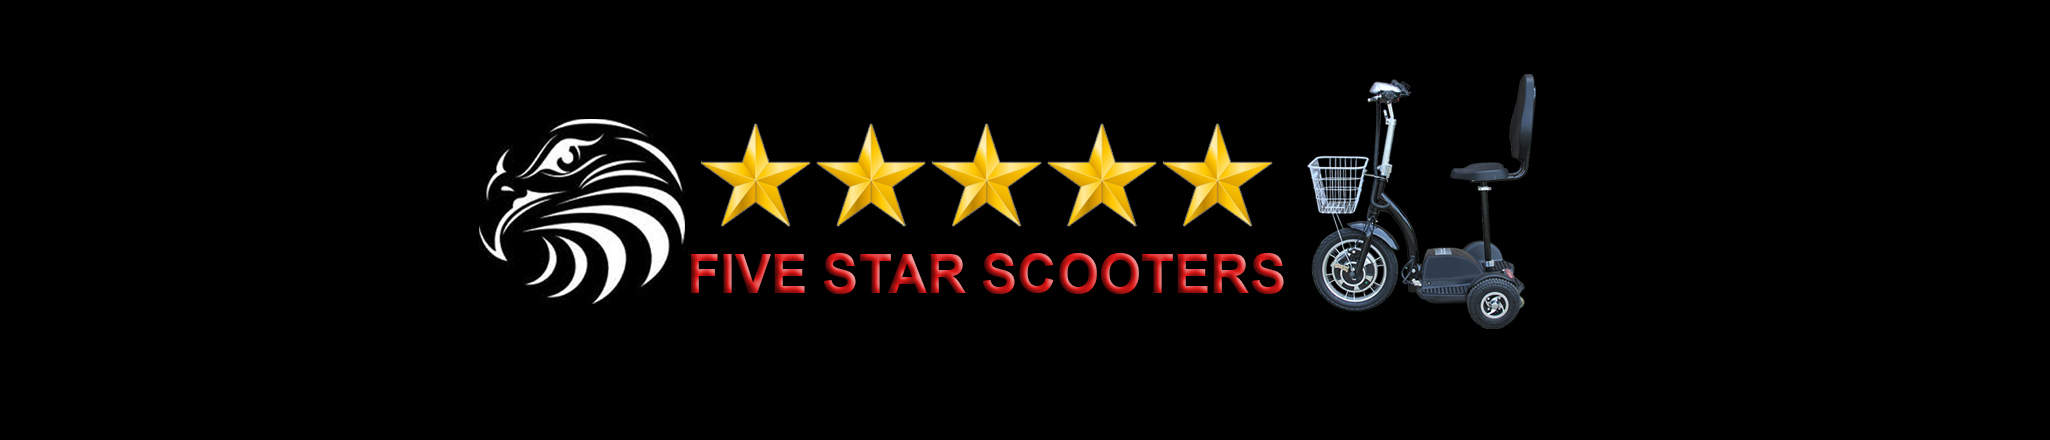 Five 5 Star Scooters